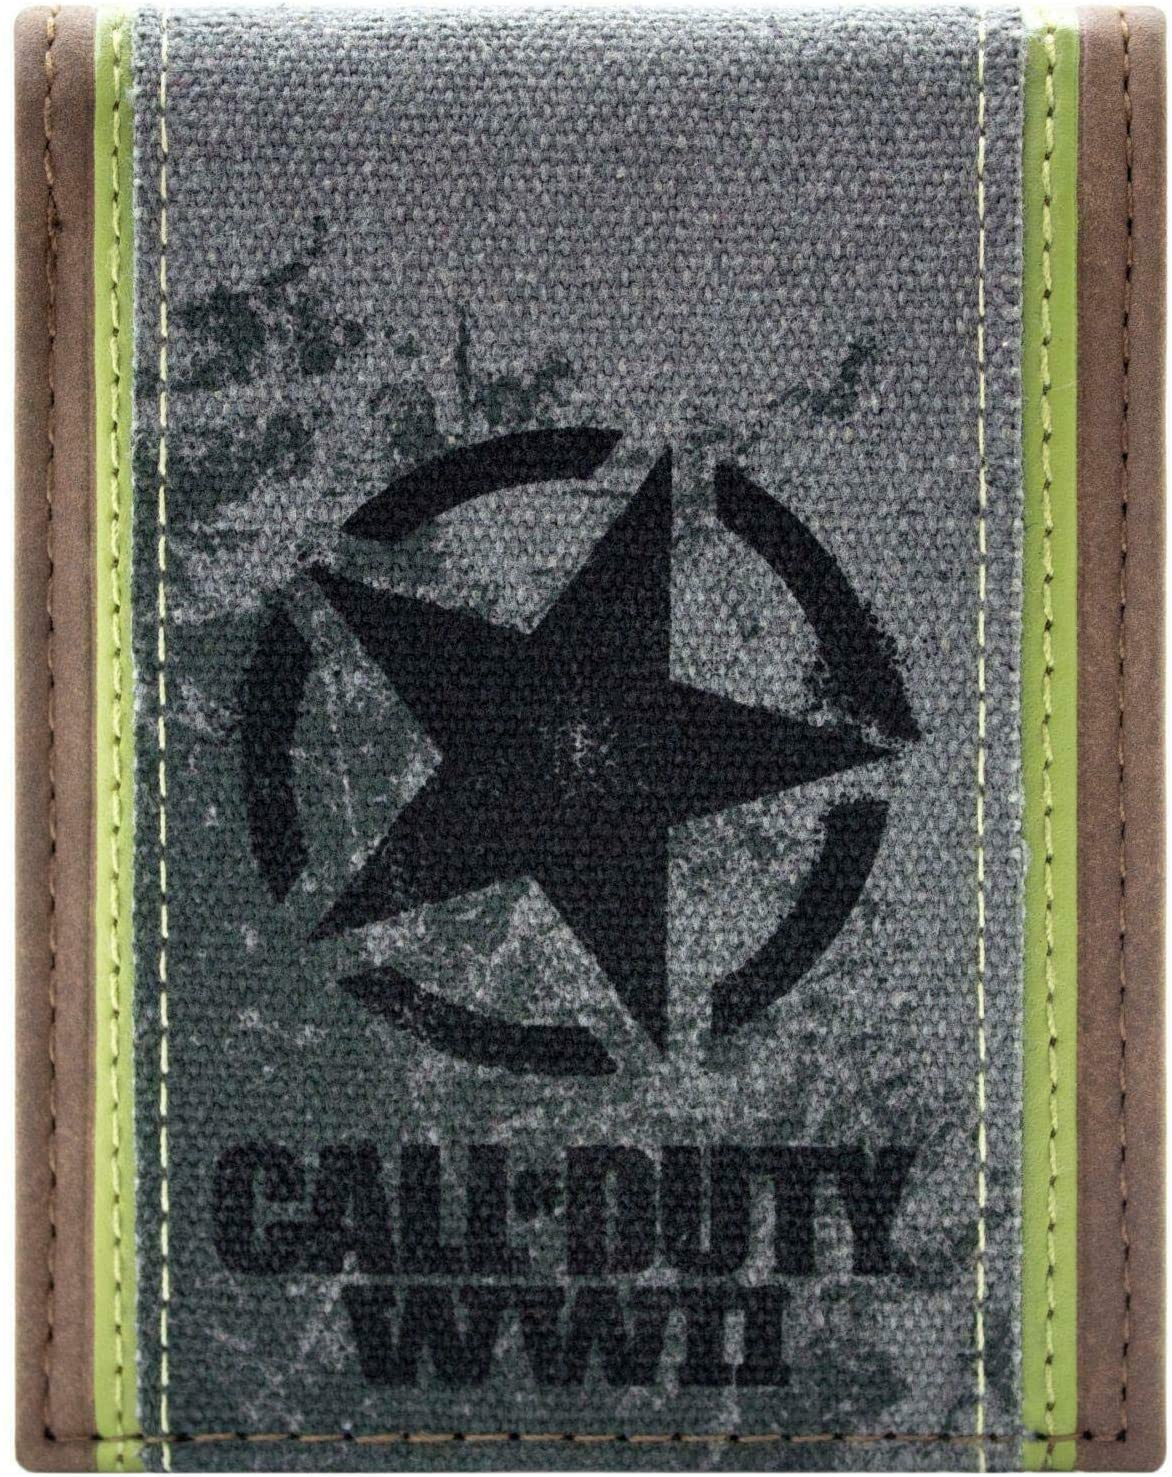 A close-up of the beige, grey, and gold wallet with the Call of Duty: WWII logo on the front.